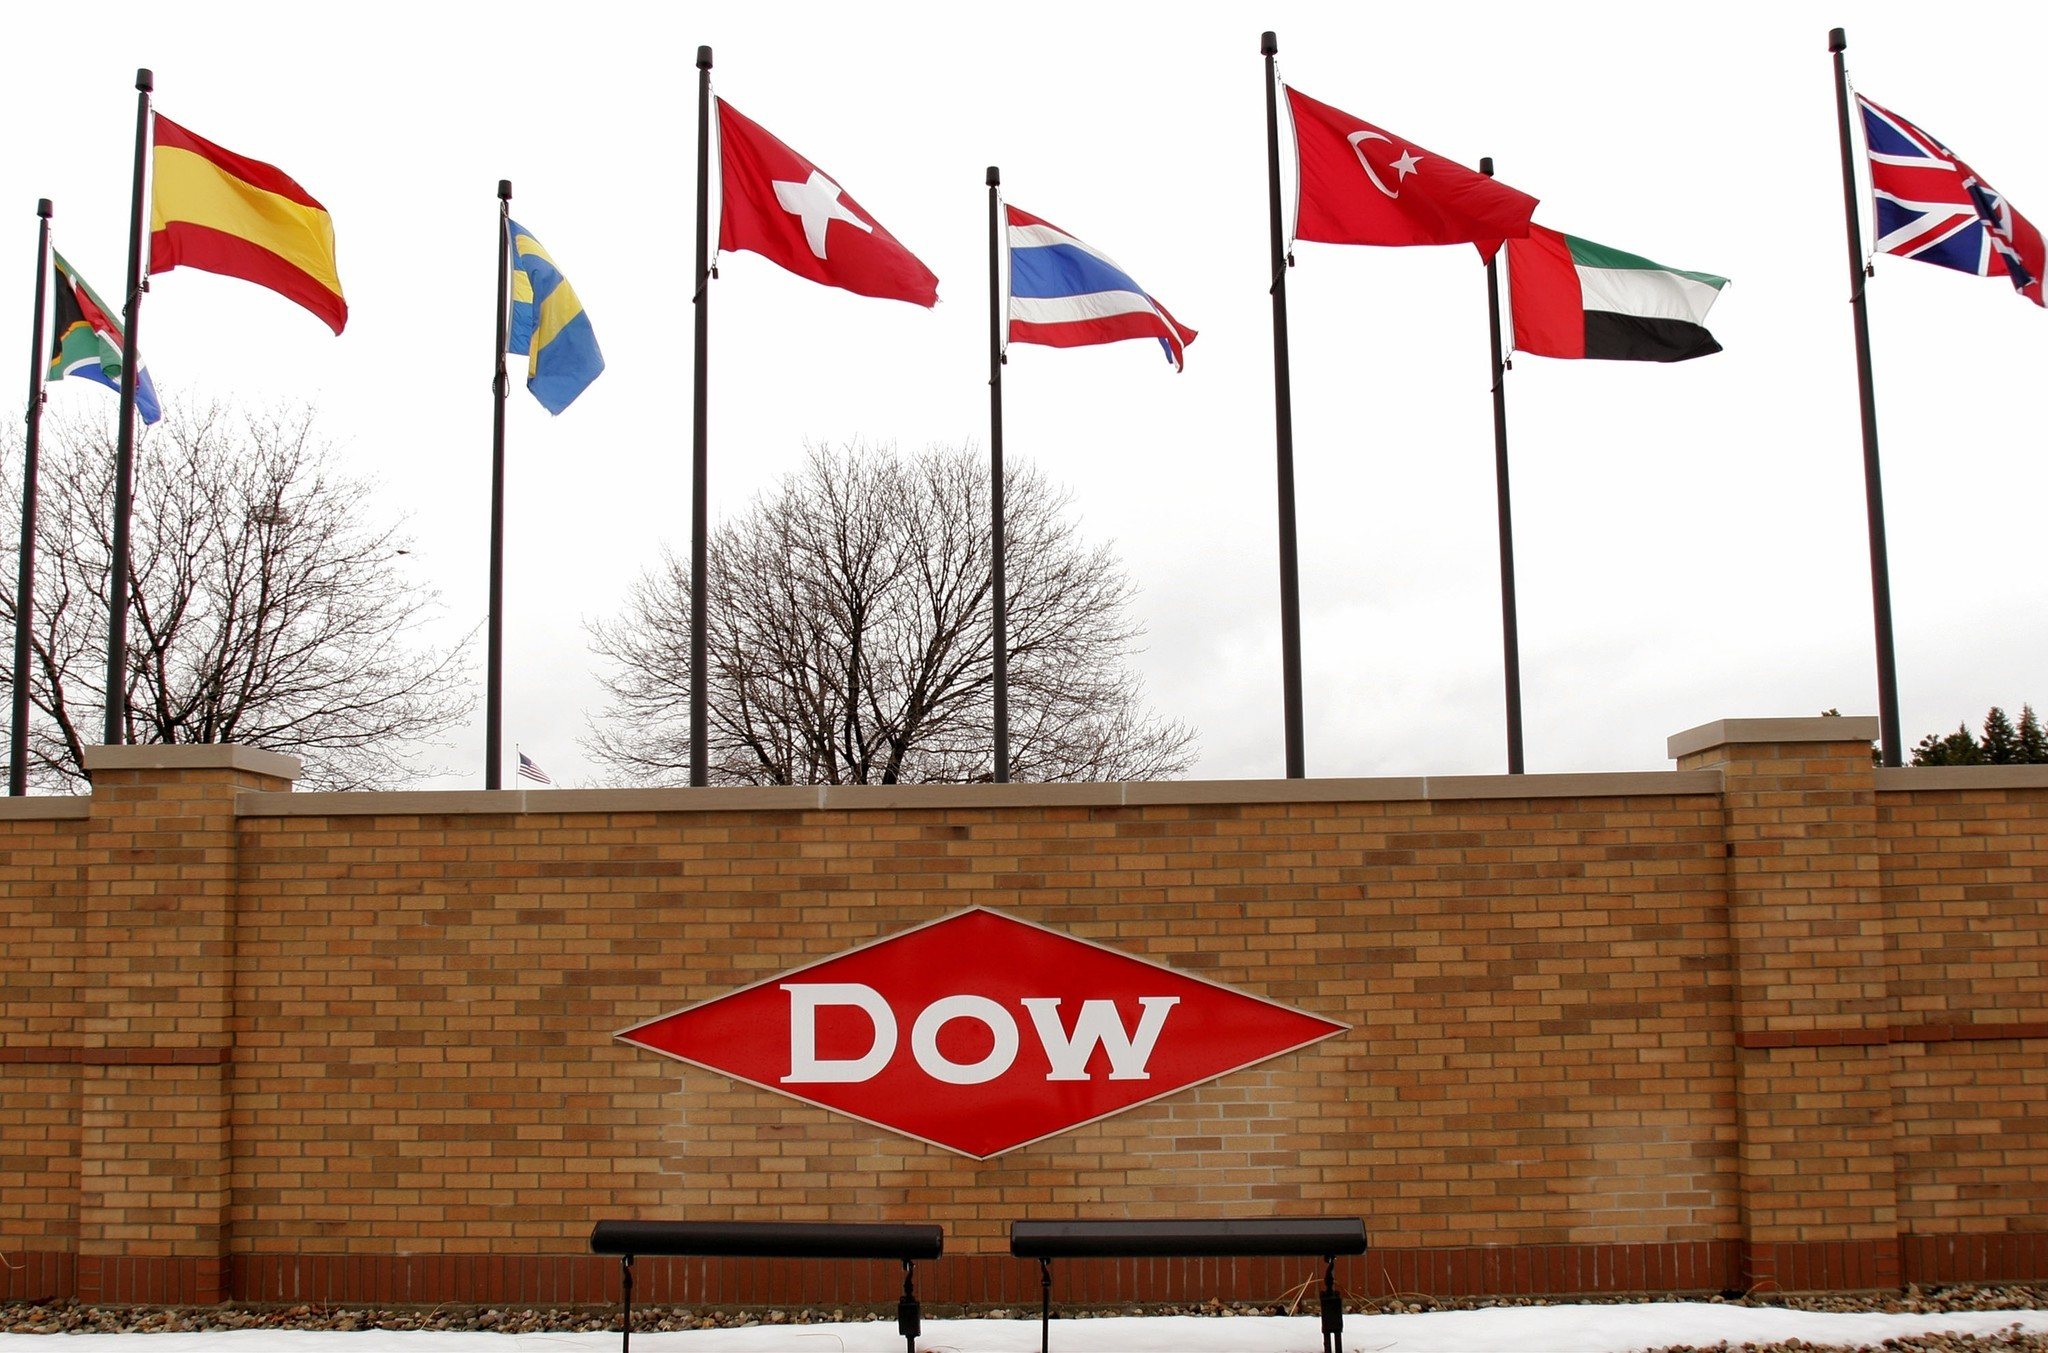 Pesticide maker Dow Chemical tries to kill federal risk